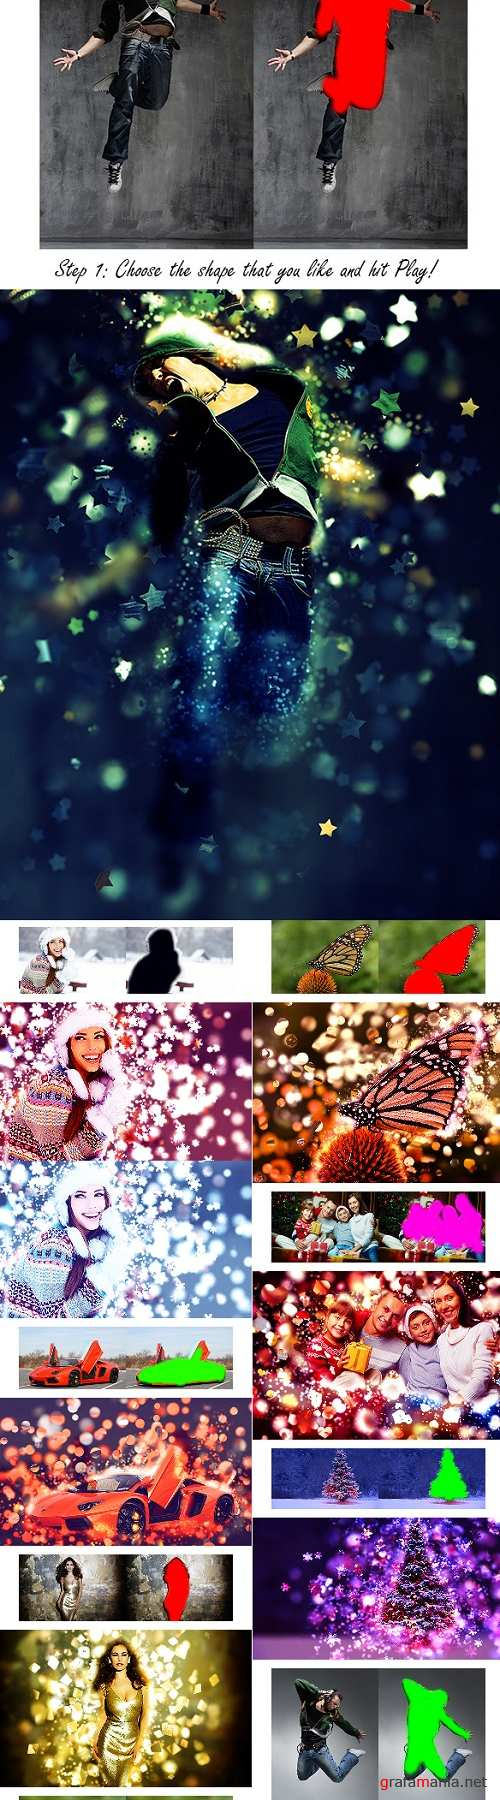 Bokeh Photoshop Action - 9724816